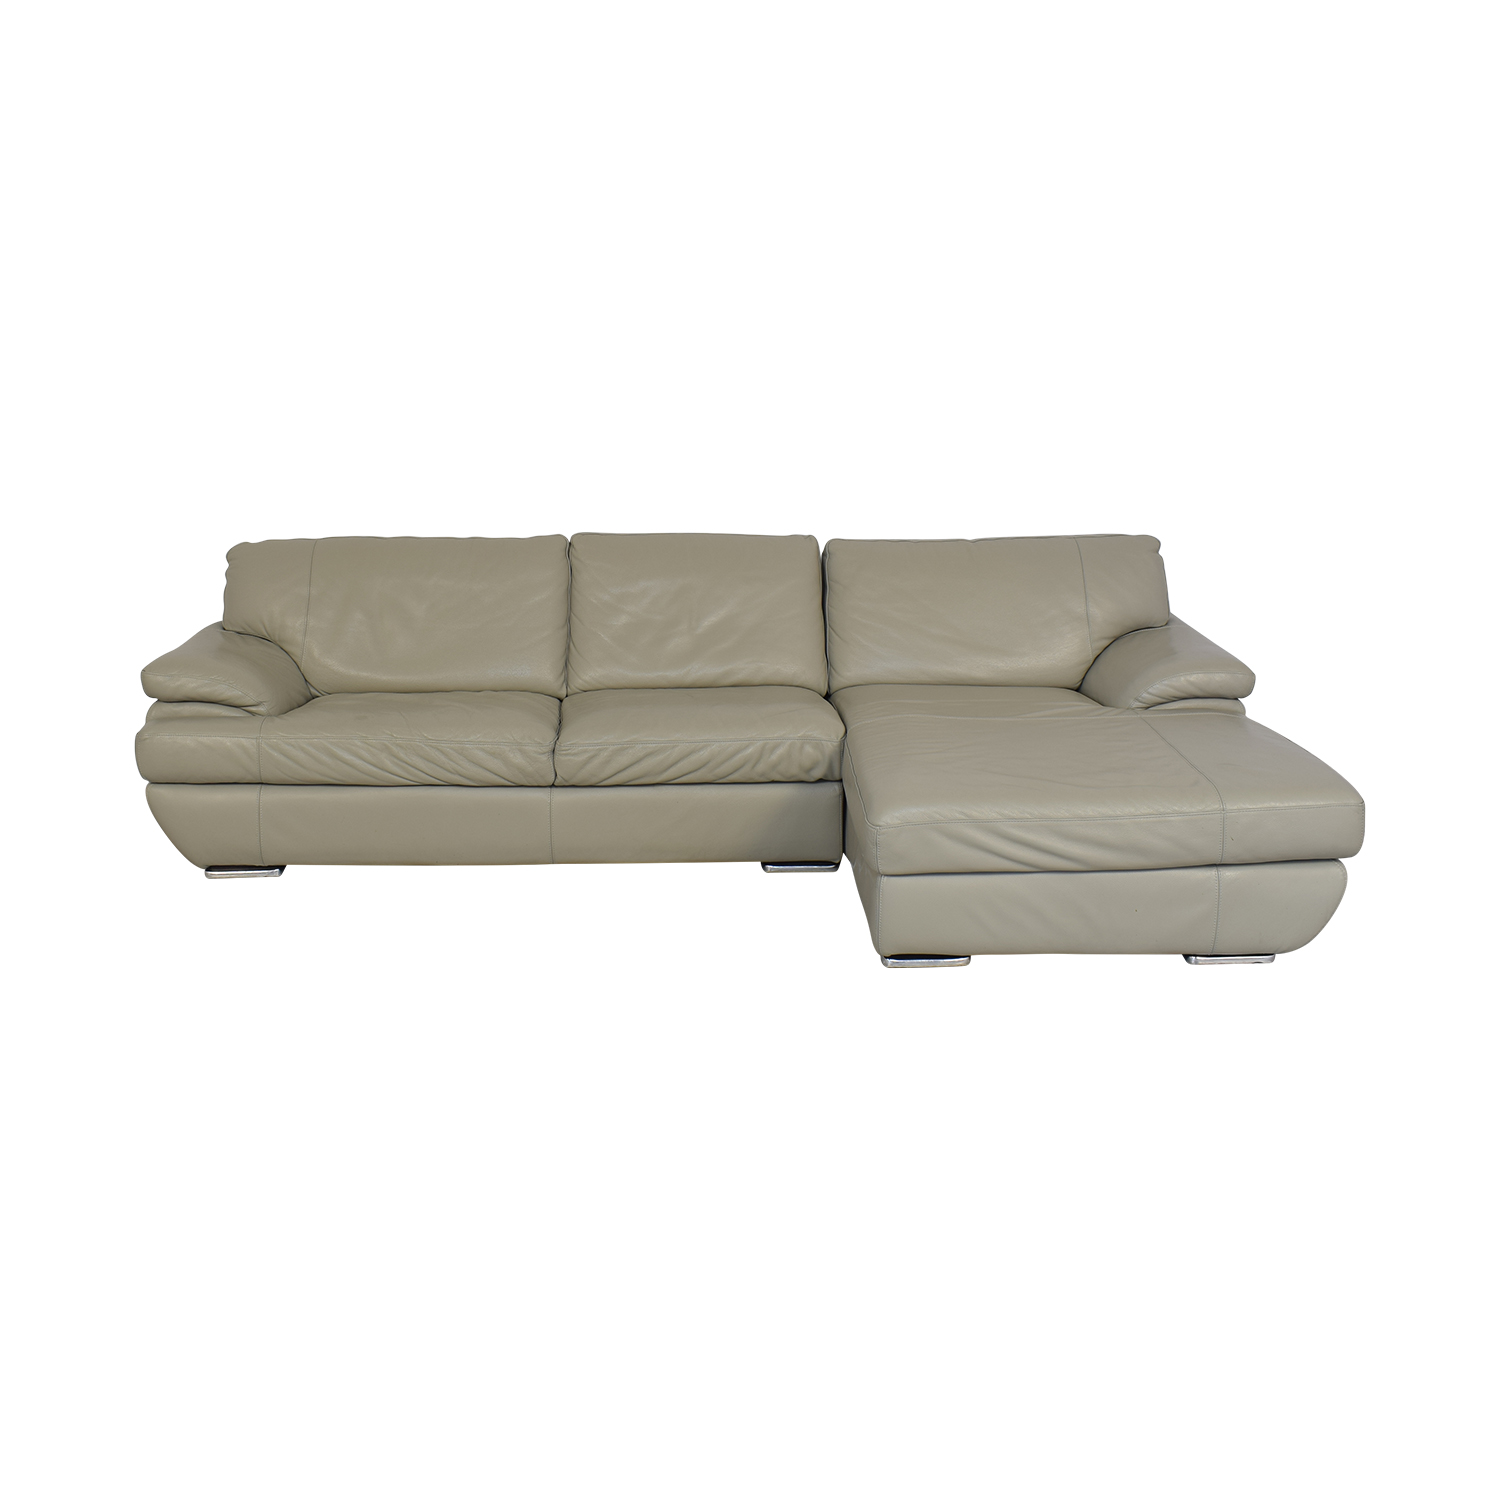 shop Chateau d'Ax Sectional Sofa with Chaise Chateau d'Ax